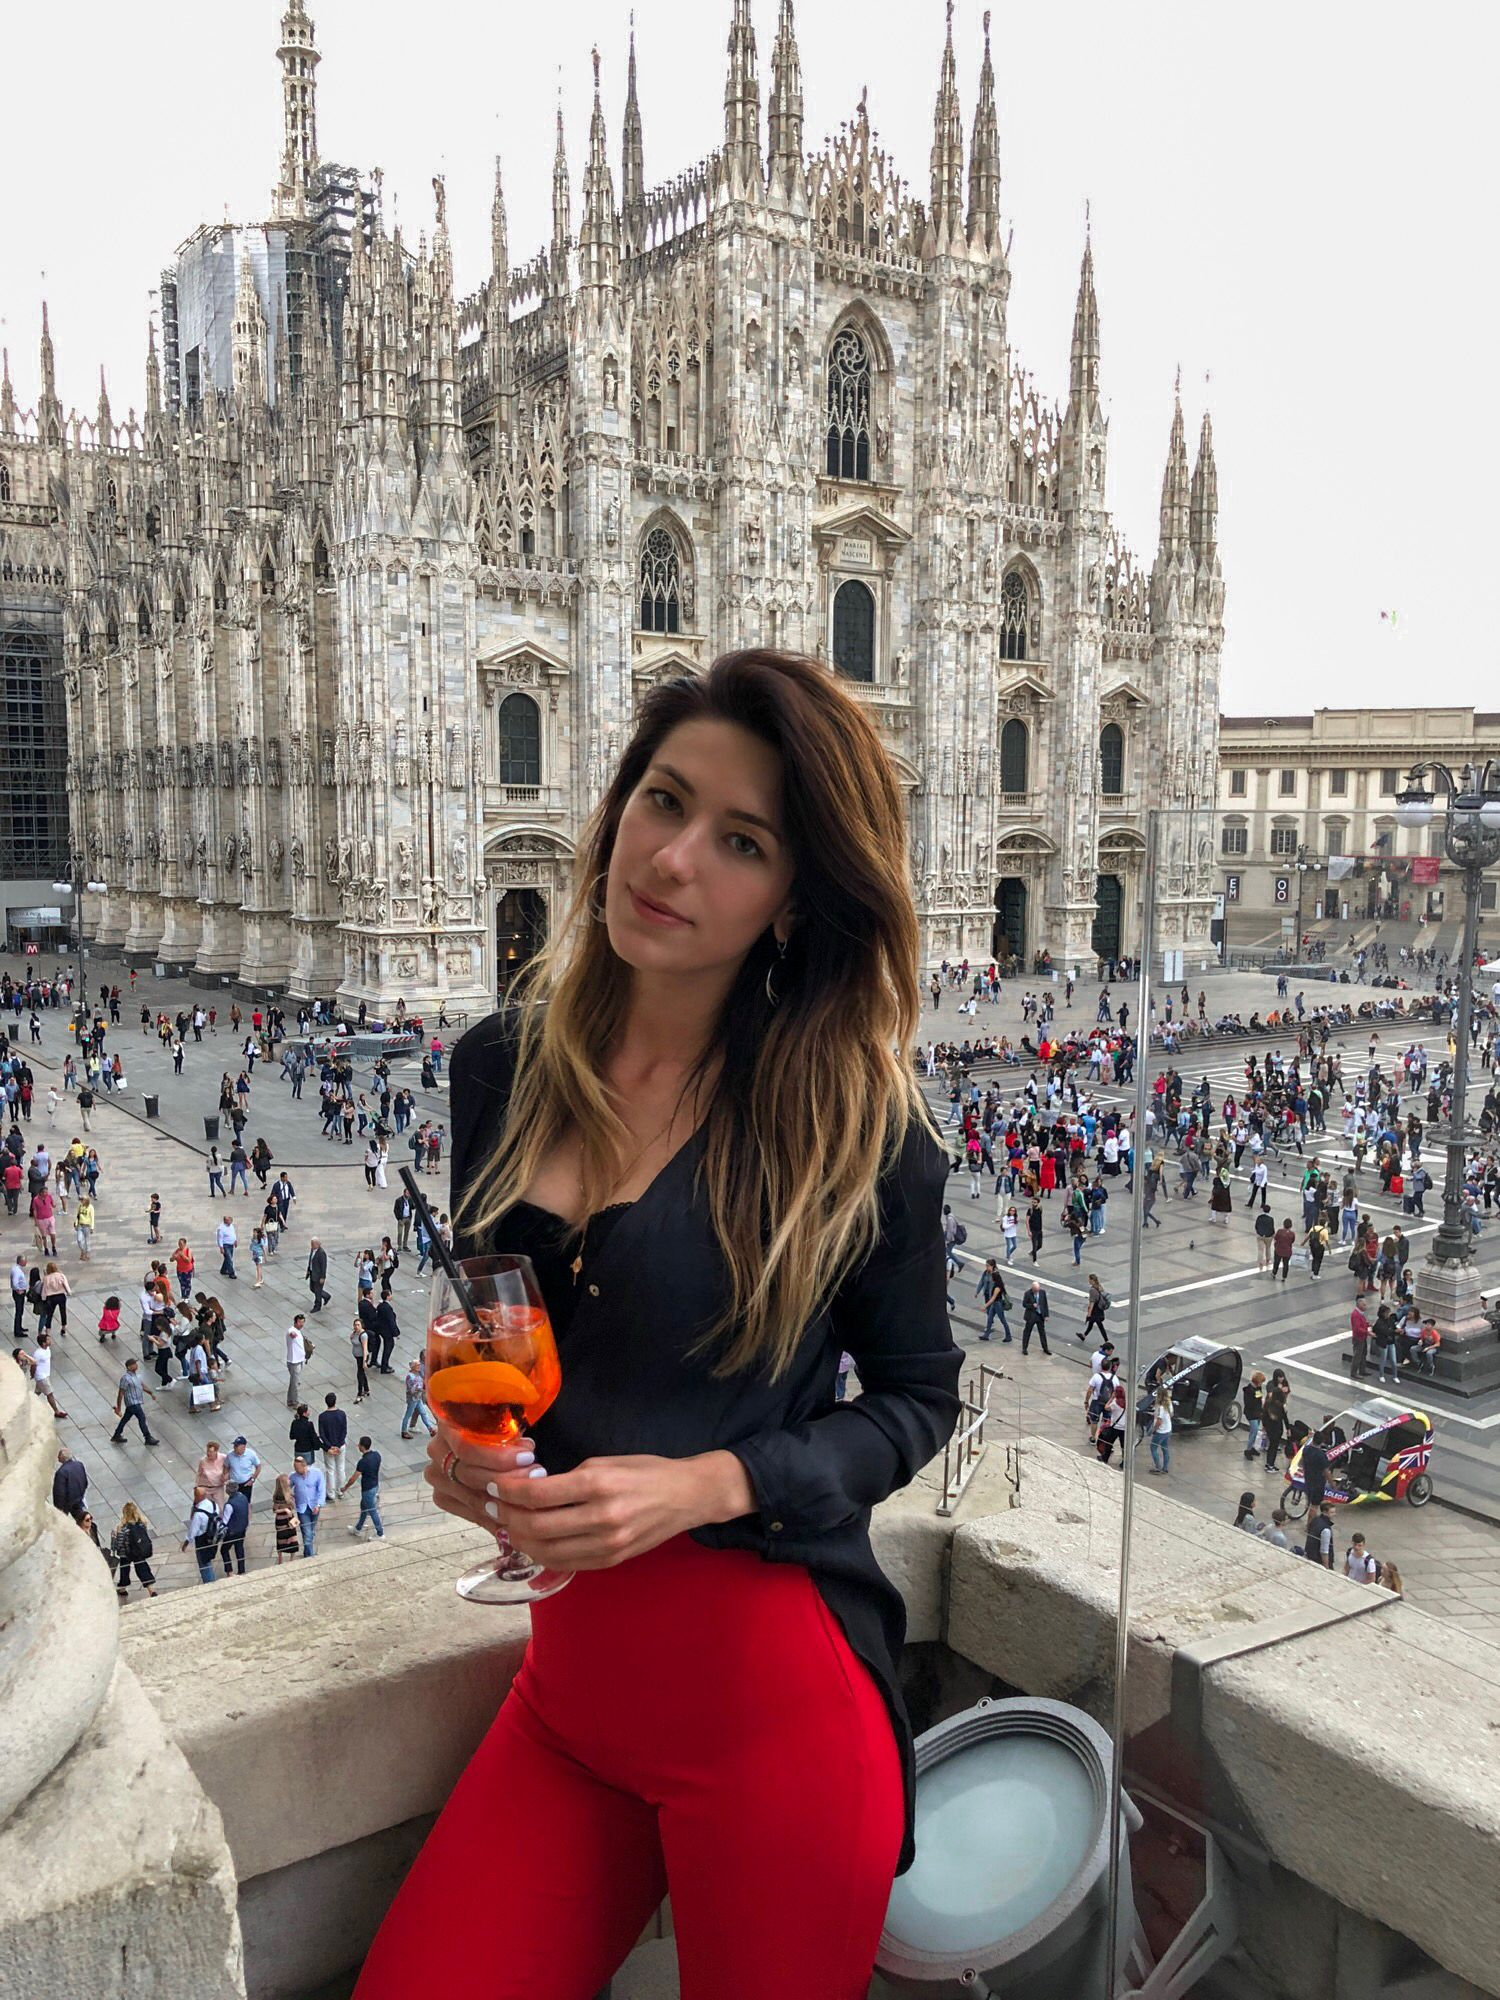 View From Terrazza Duomo 21 In Milan Travel у 2019 р